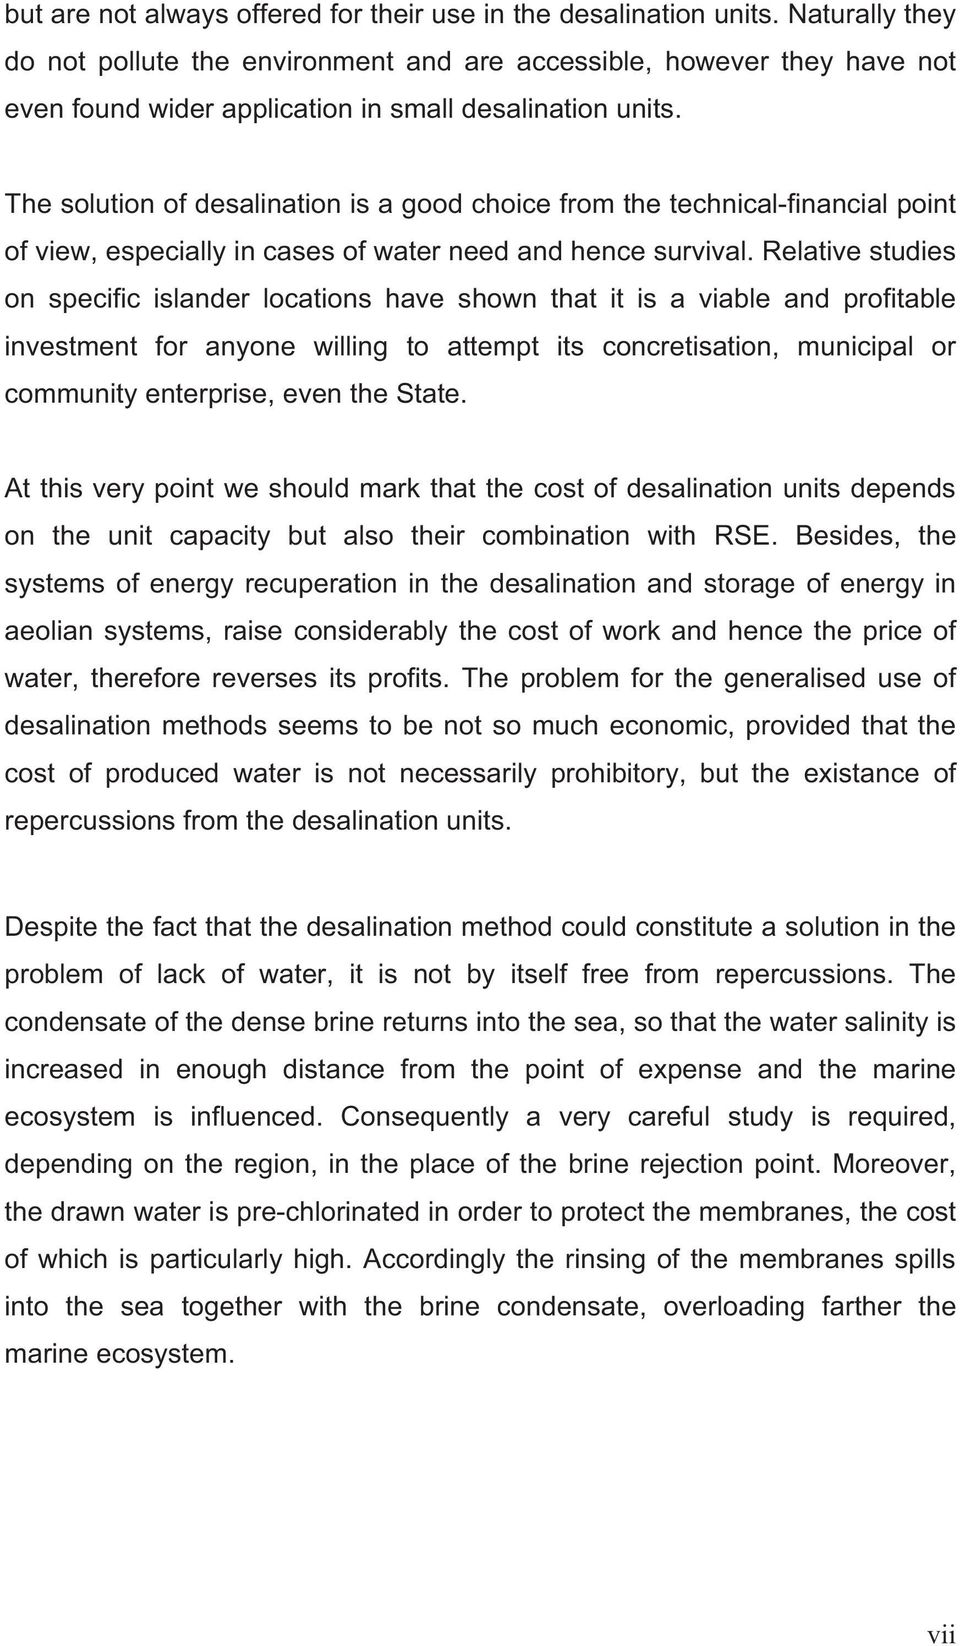 The solution of desalination is a good choice from the technical-financial point of view, especially in cases of water need and hence survival.